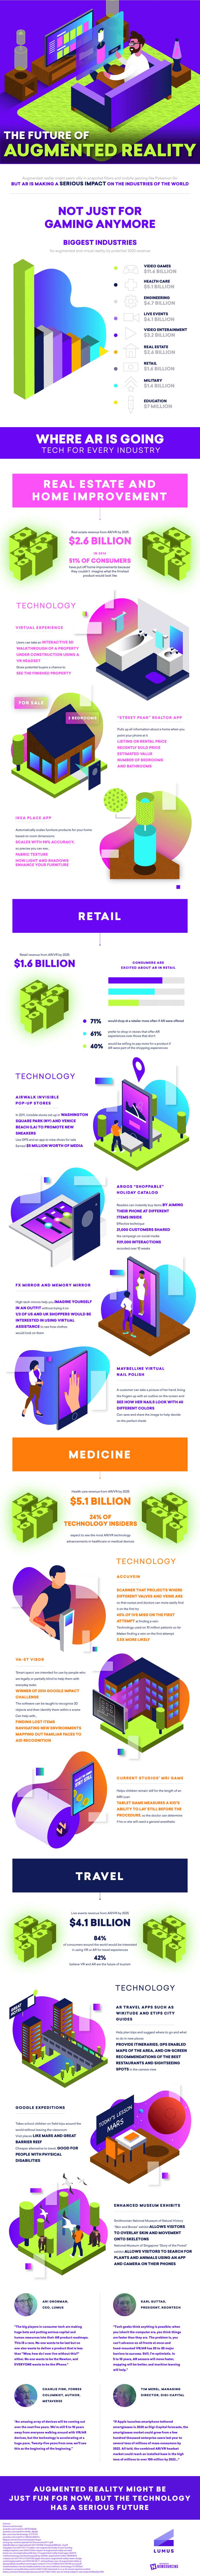 10 Best Infographics Of 2018 - By Brian Wallace